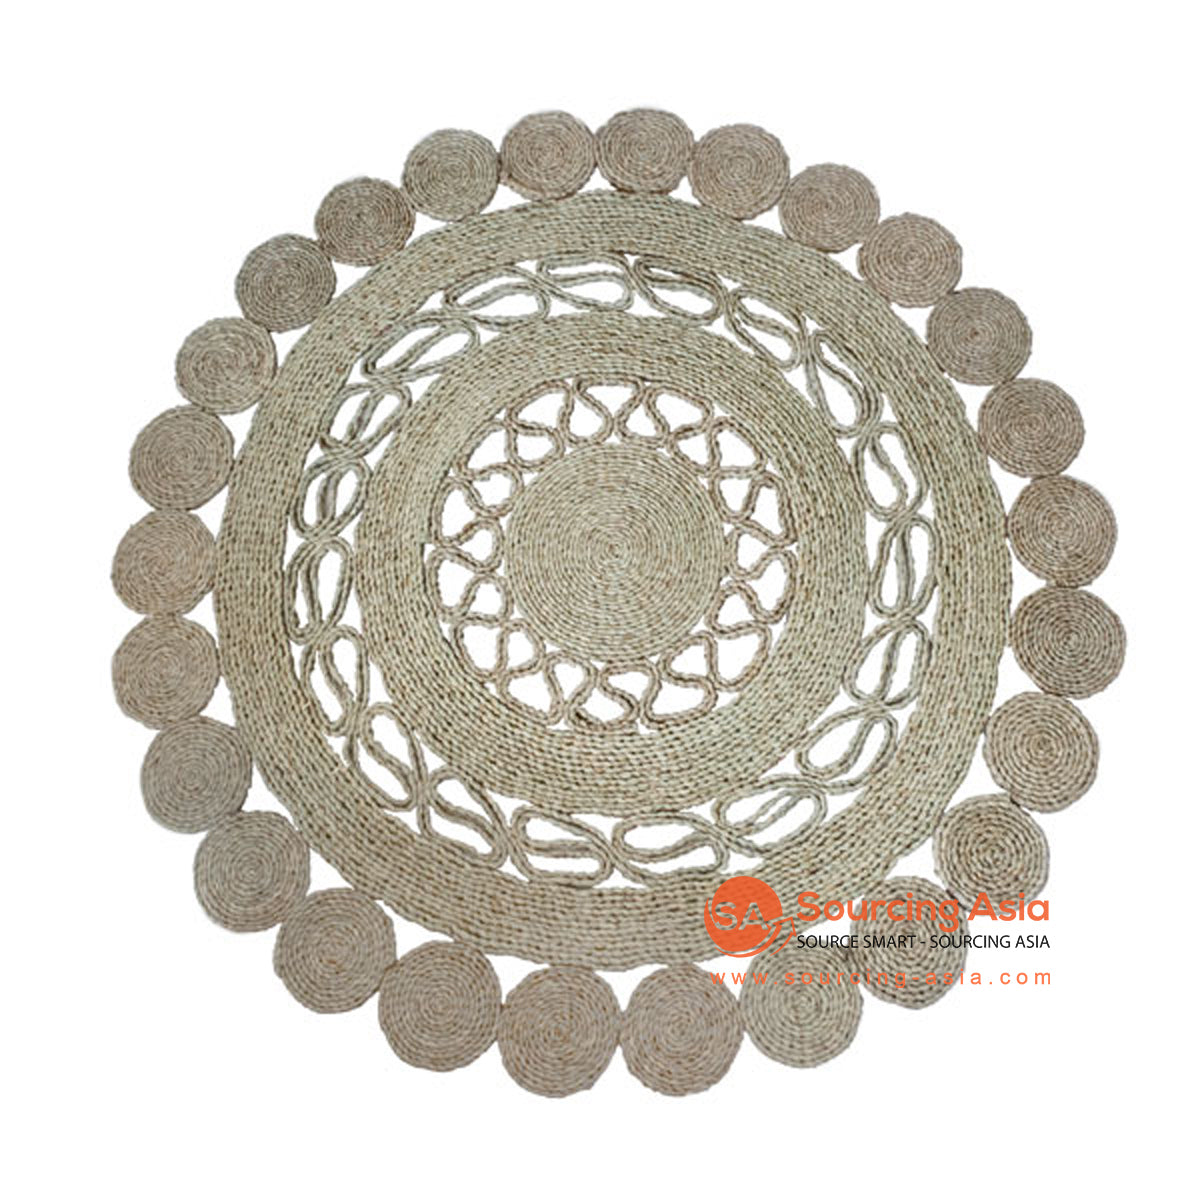 SHL190-1 NATURAL SEAGRASS DECORATIVE ROUND RUG